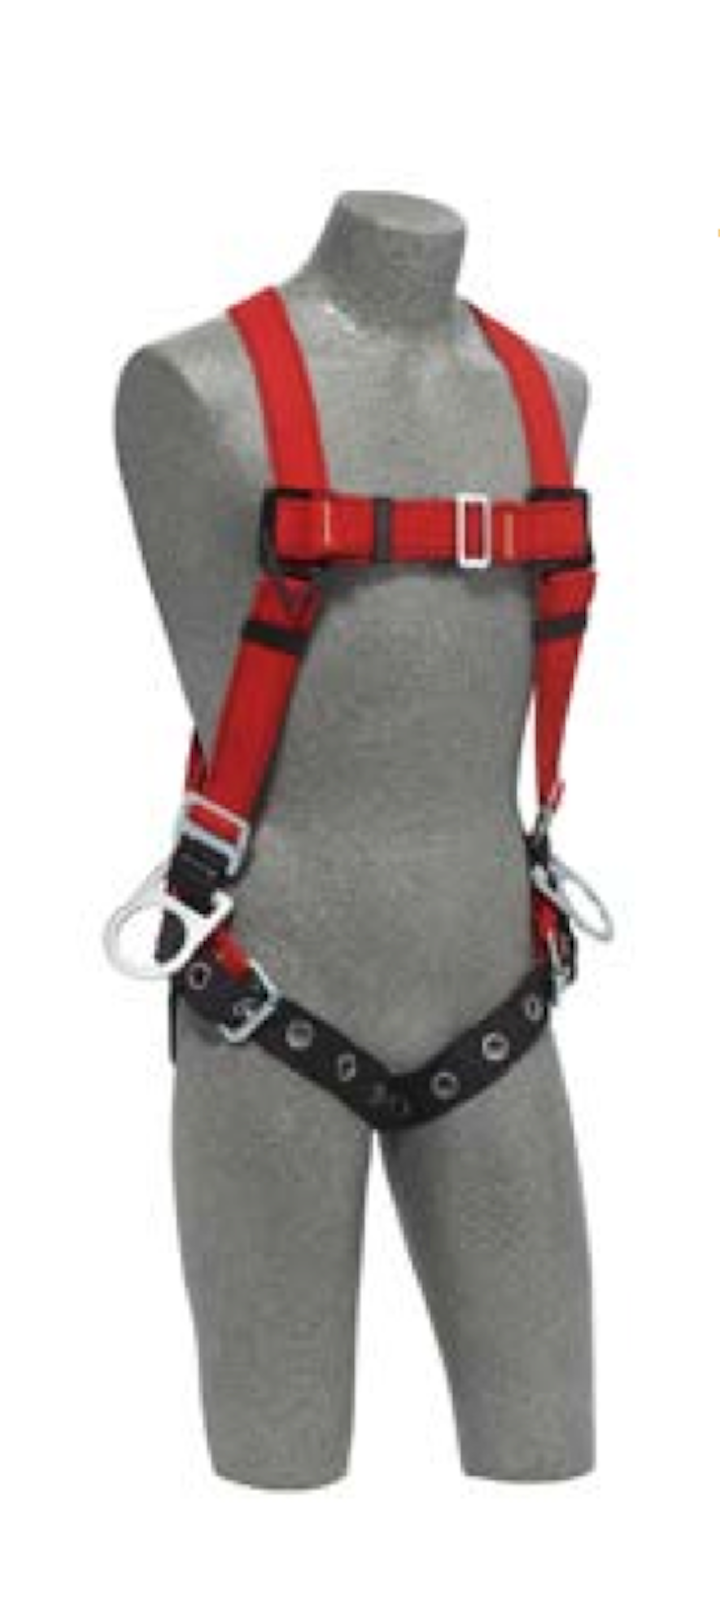 Content Dam Up En Articles 2013 07 Fall Protection Products From Capital Safety Leftcolumn Article Thumbnailimage File